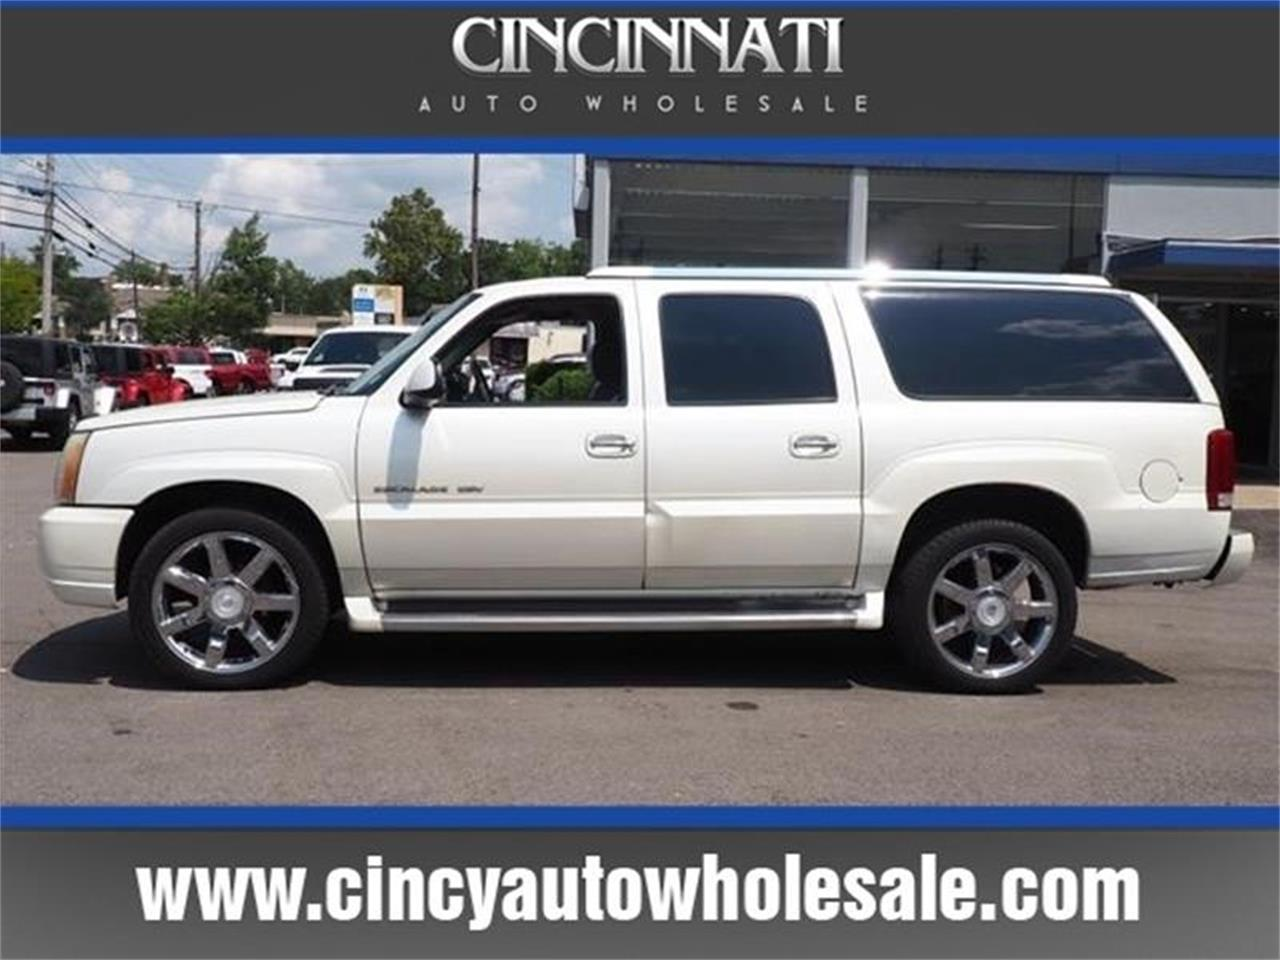 Large Picture of '03 Escalade located in Loveland Ohio - $3,000.00 Offered by Cincinnati Auto Wholesale - MBL6